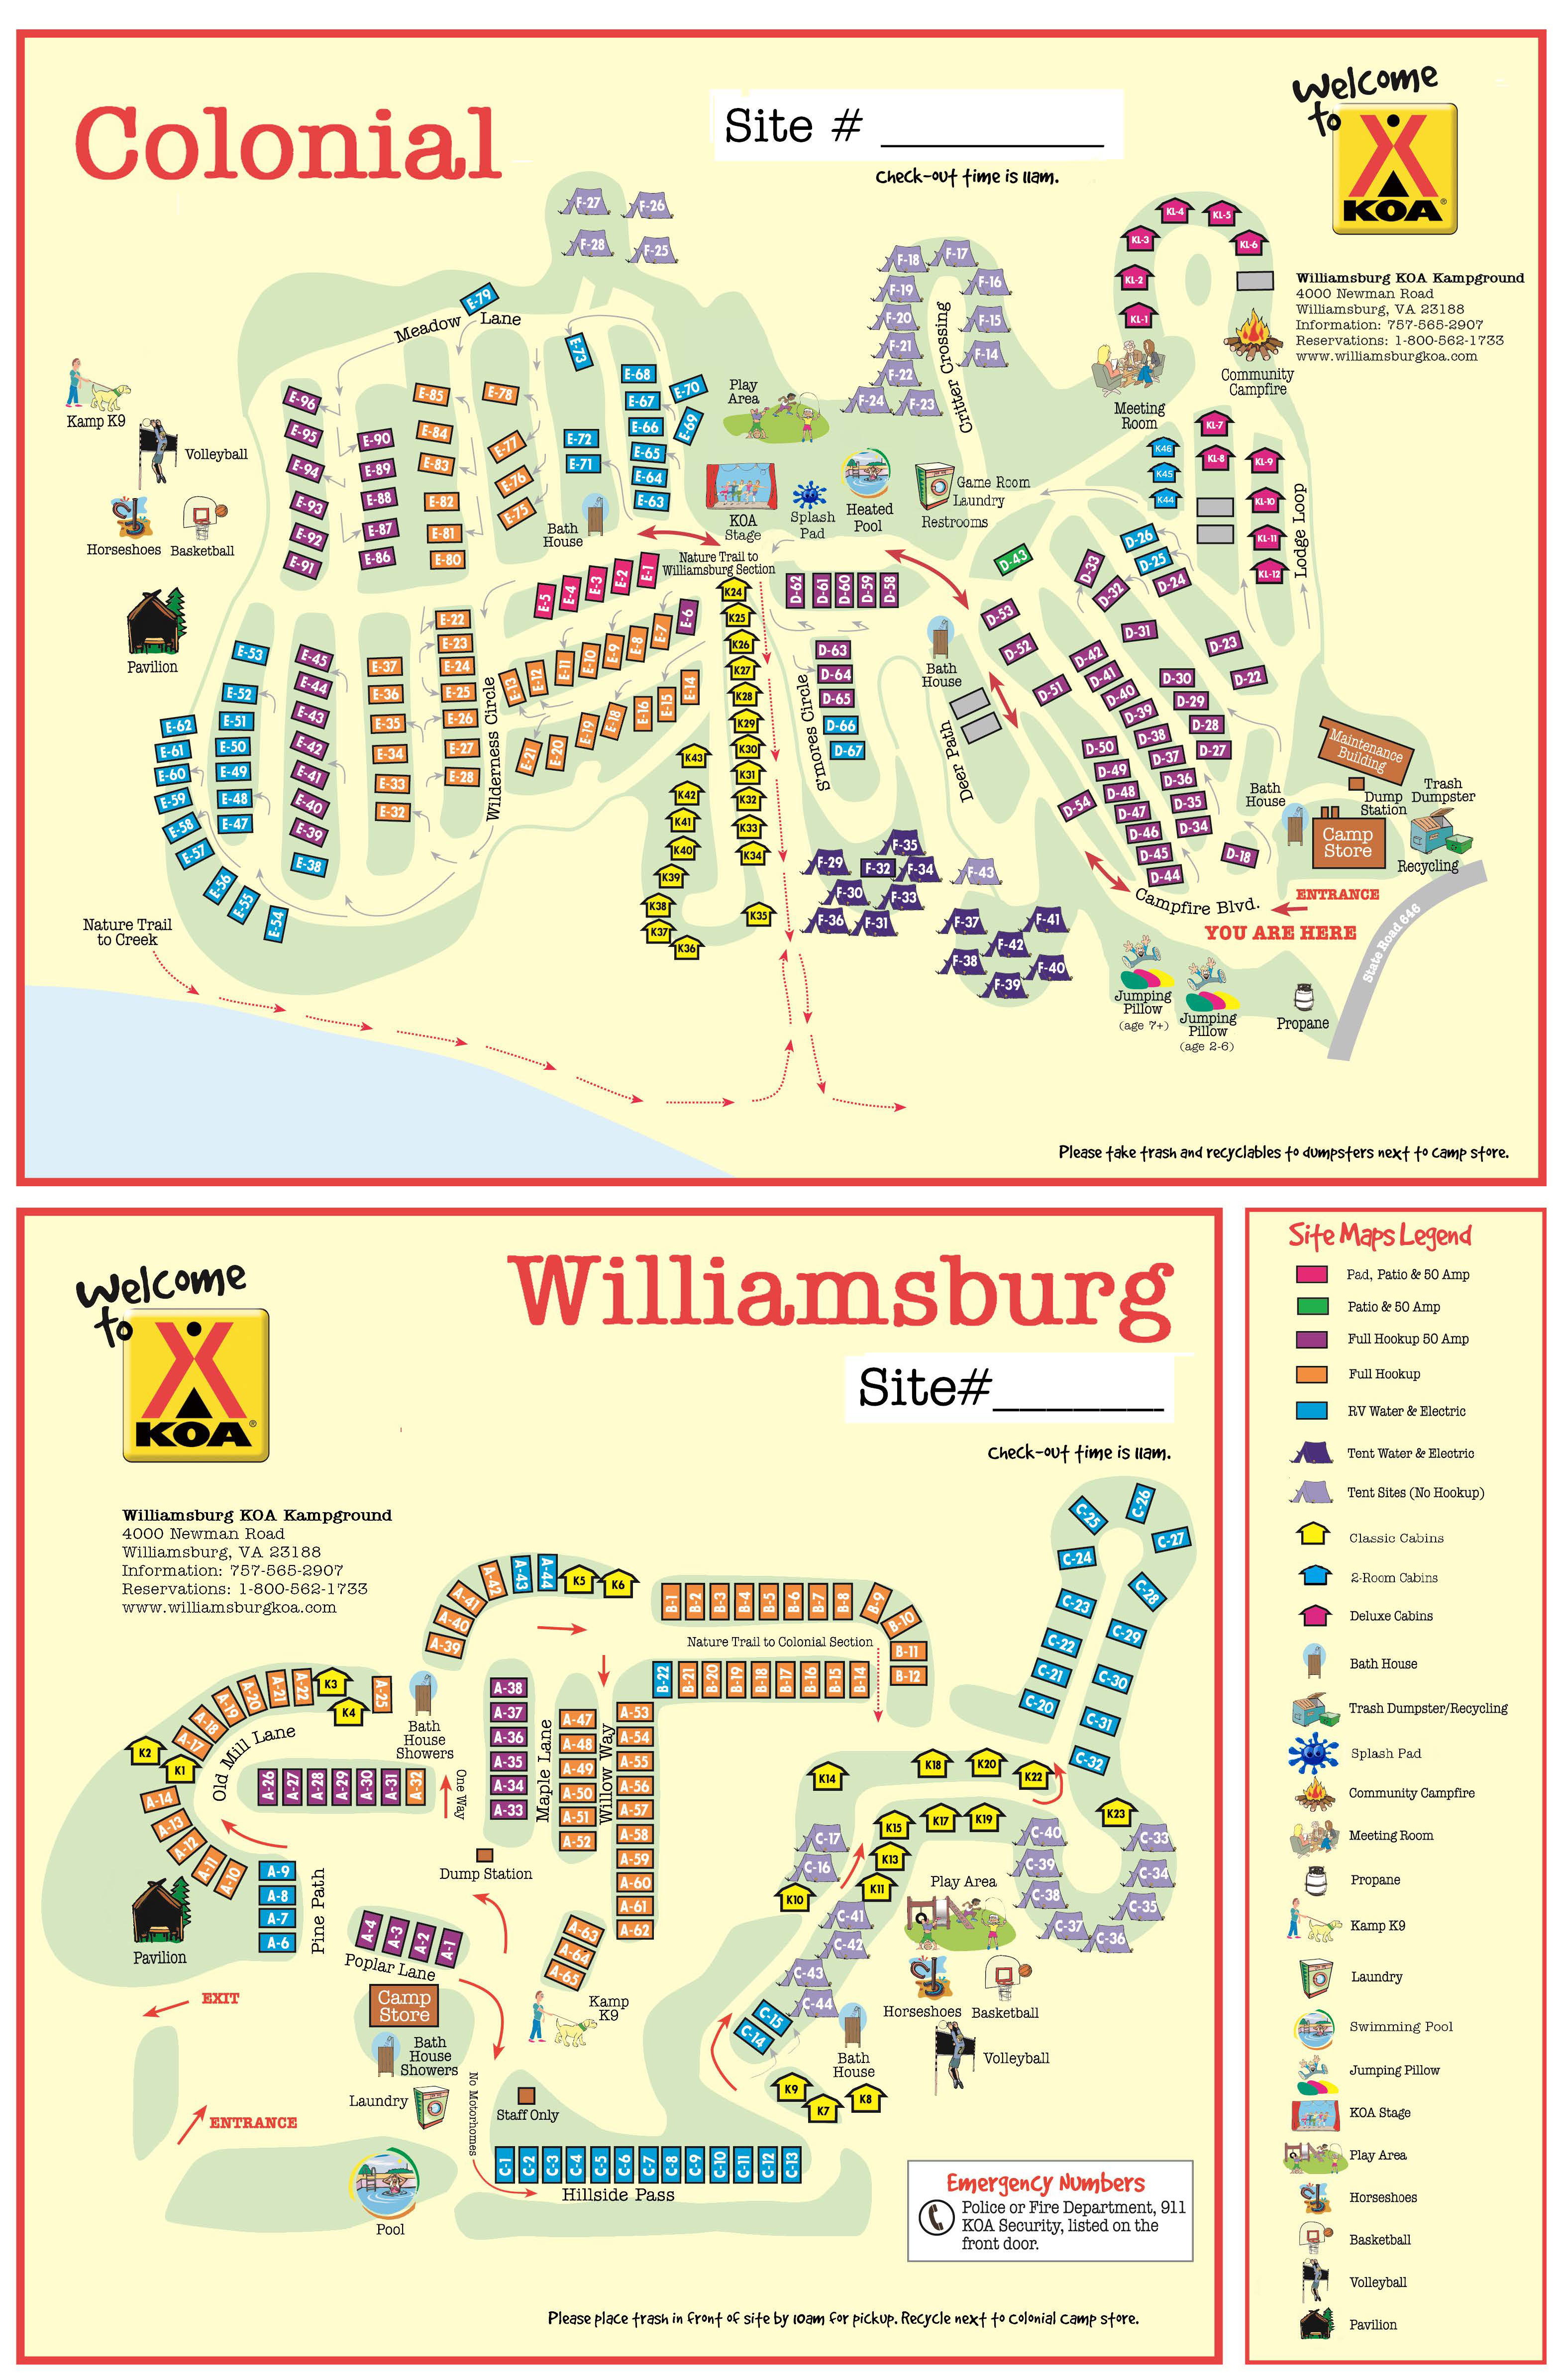 Activities Attractions And Events For The Williamsburg